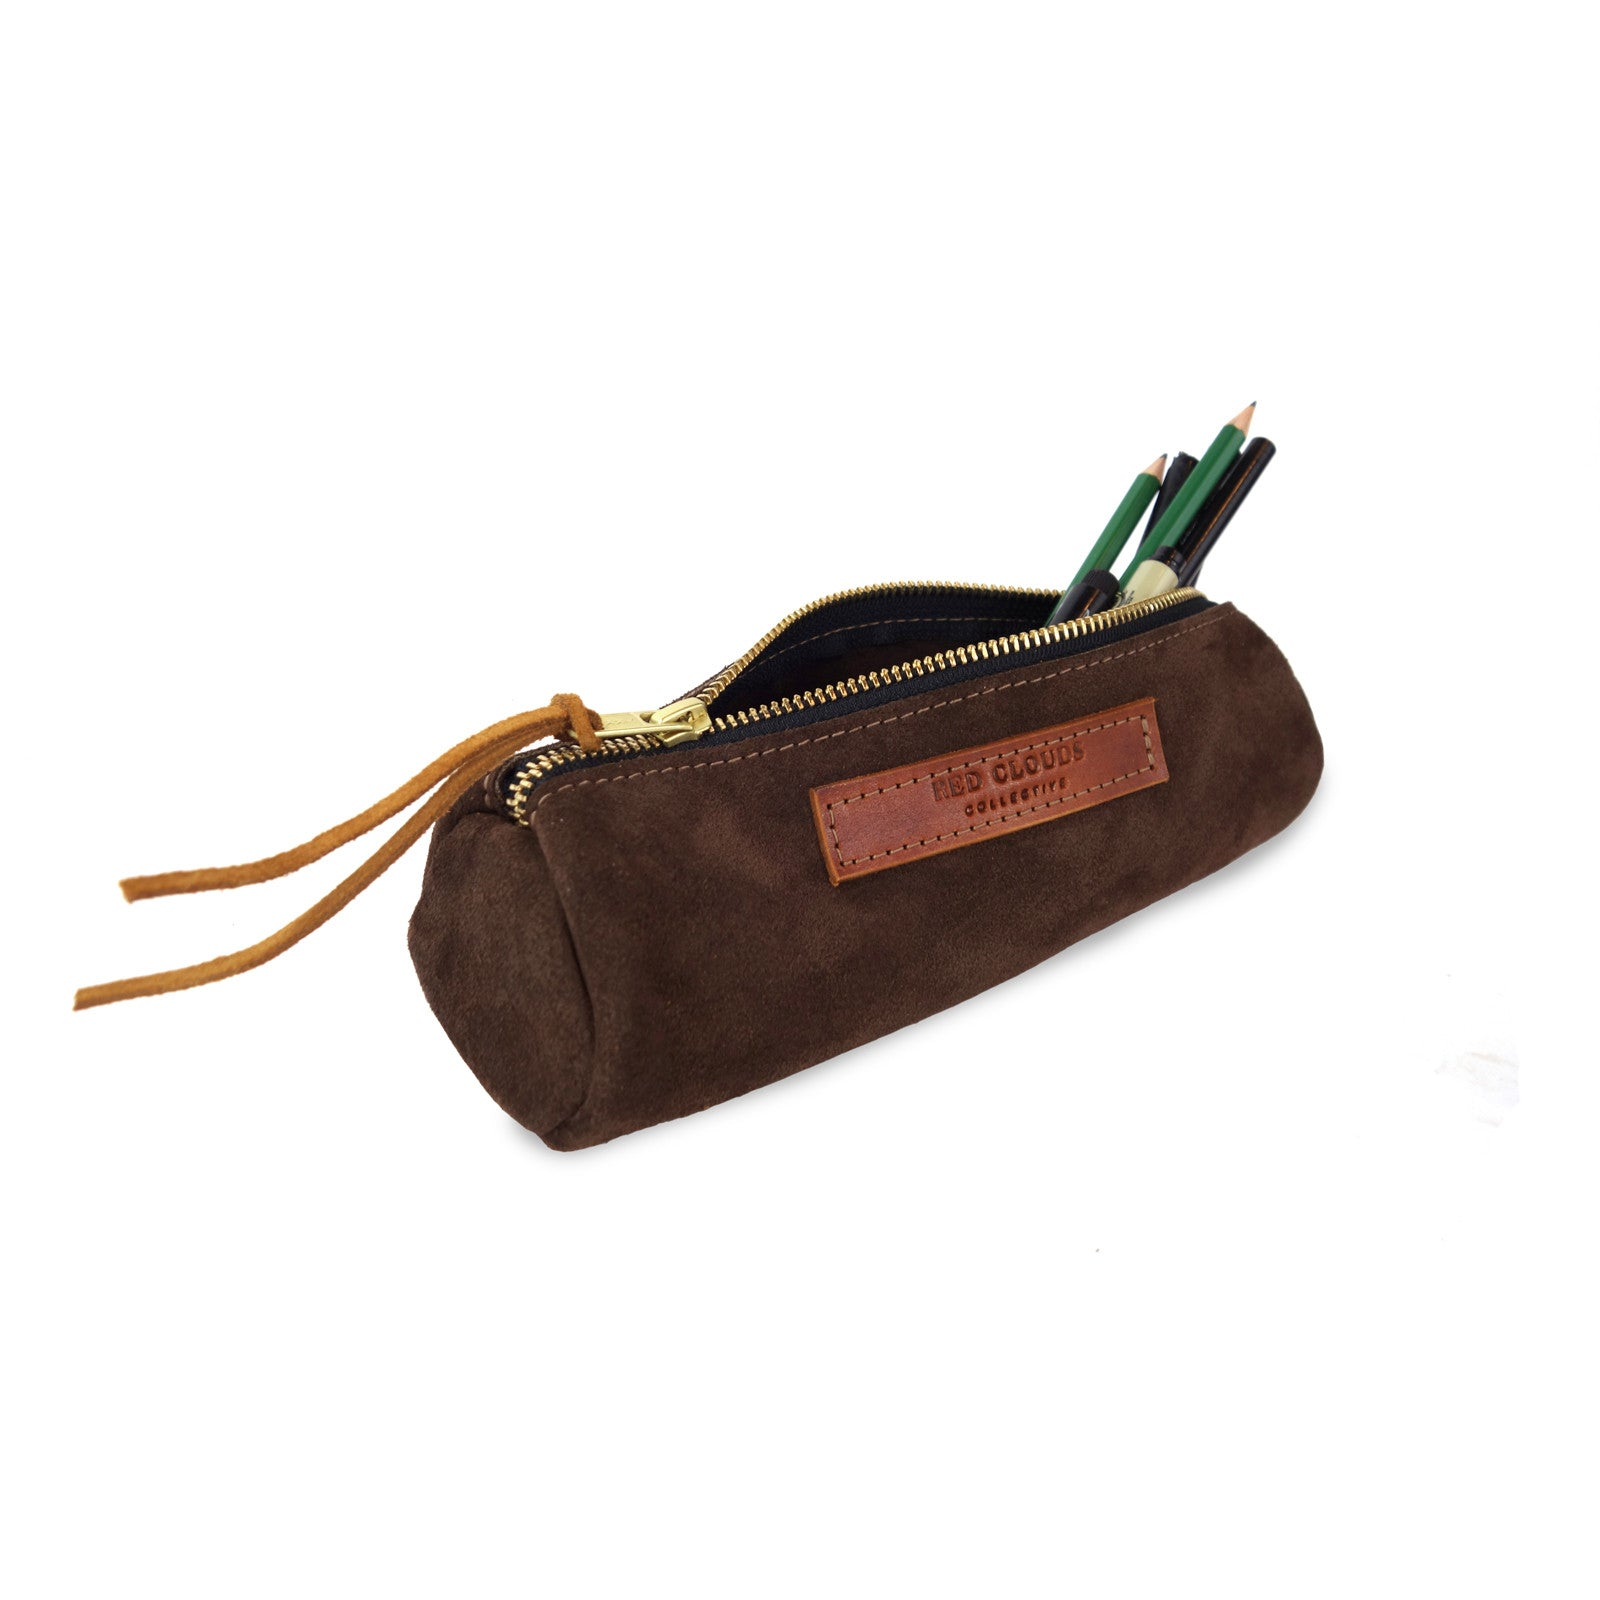 Round pencil case, suede case, suede pouch, leather case, pencil case, pen case, brush holder, tool pouch, pencil pouch, This versatile case can hold tools of all types, including pencils, pens, paint brushes and anything else you might need to get a project done.